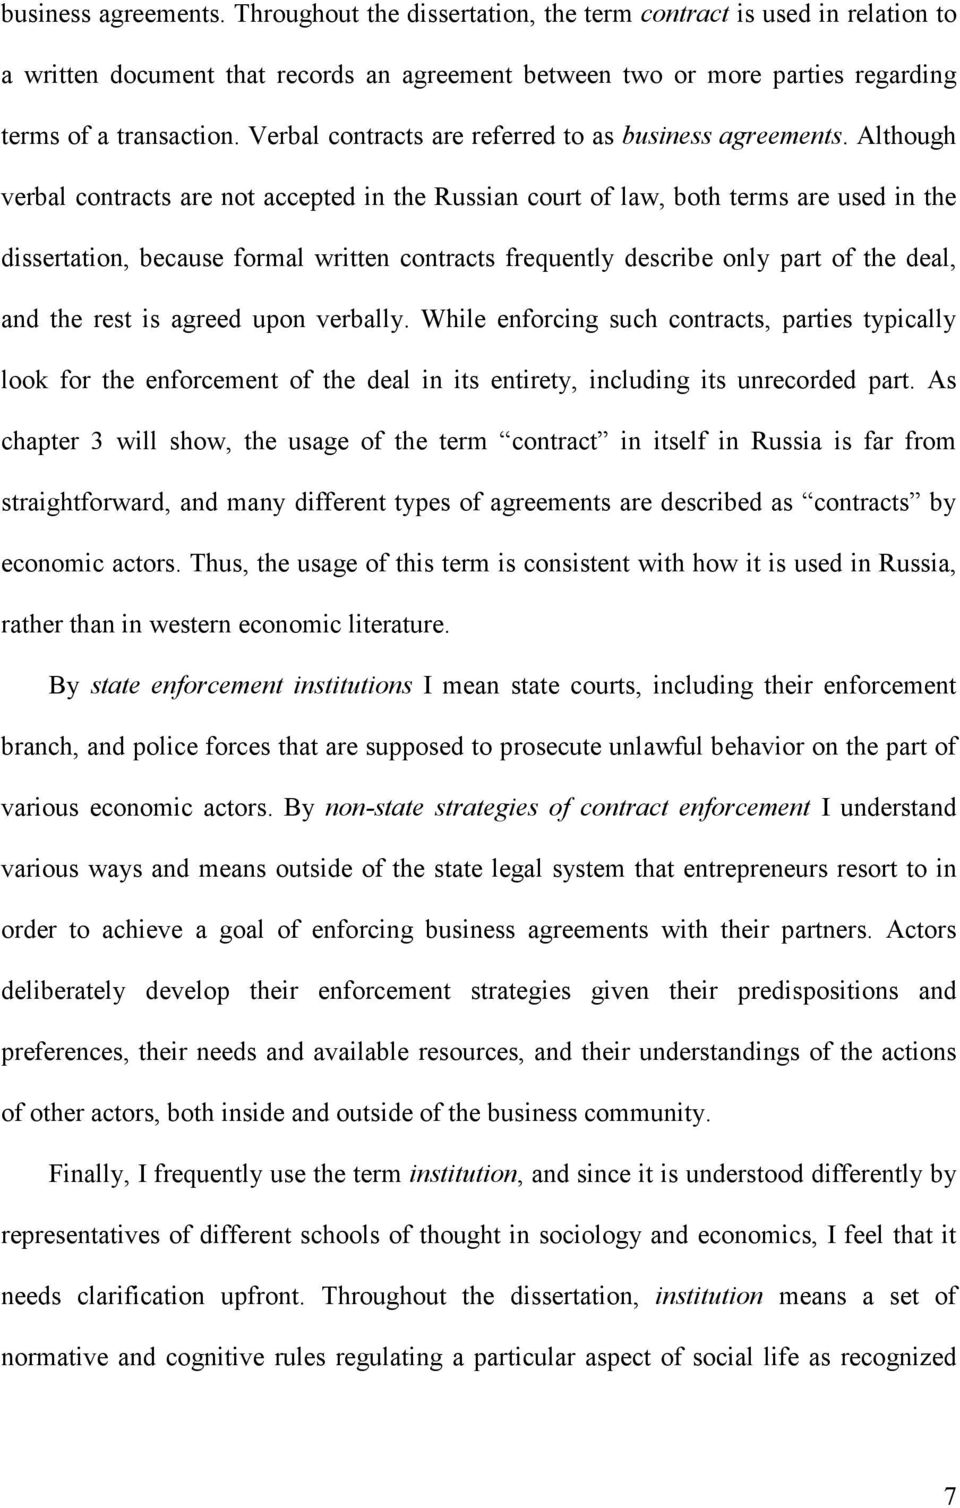 Although verbal contracts are not accepted in the Russian court of law, both terms are used in the dissertation, because formal written contracts frequently describe only part of the deal, and the